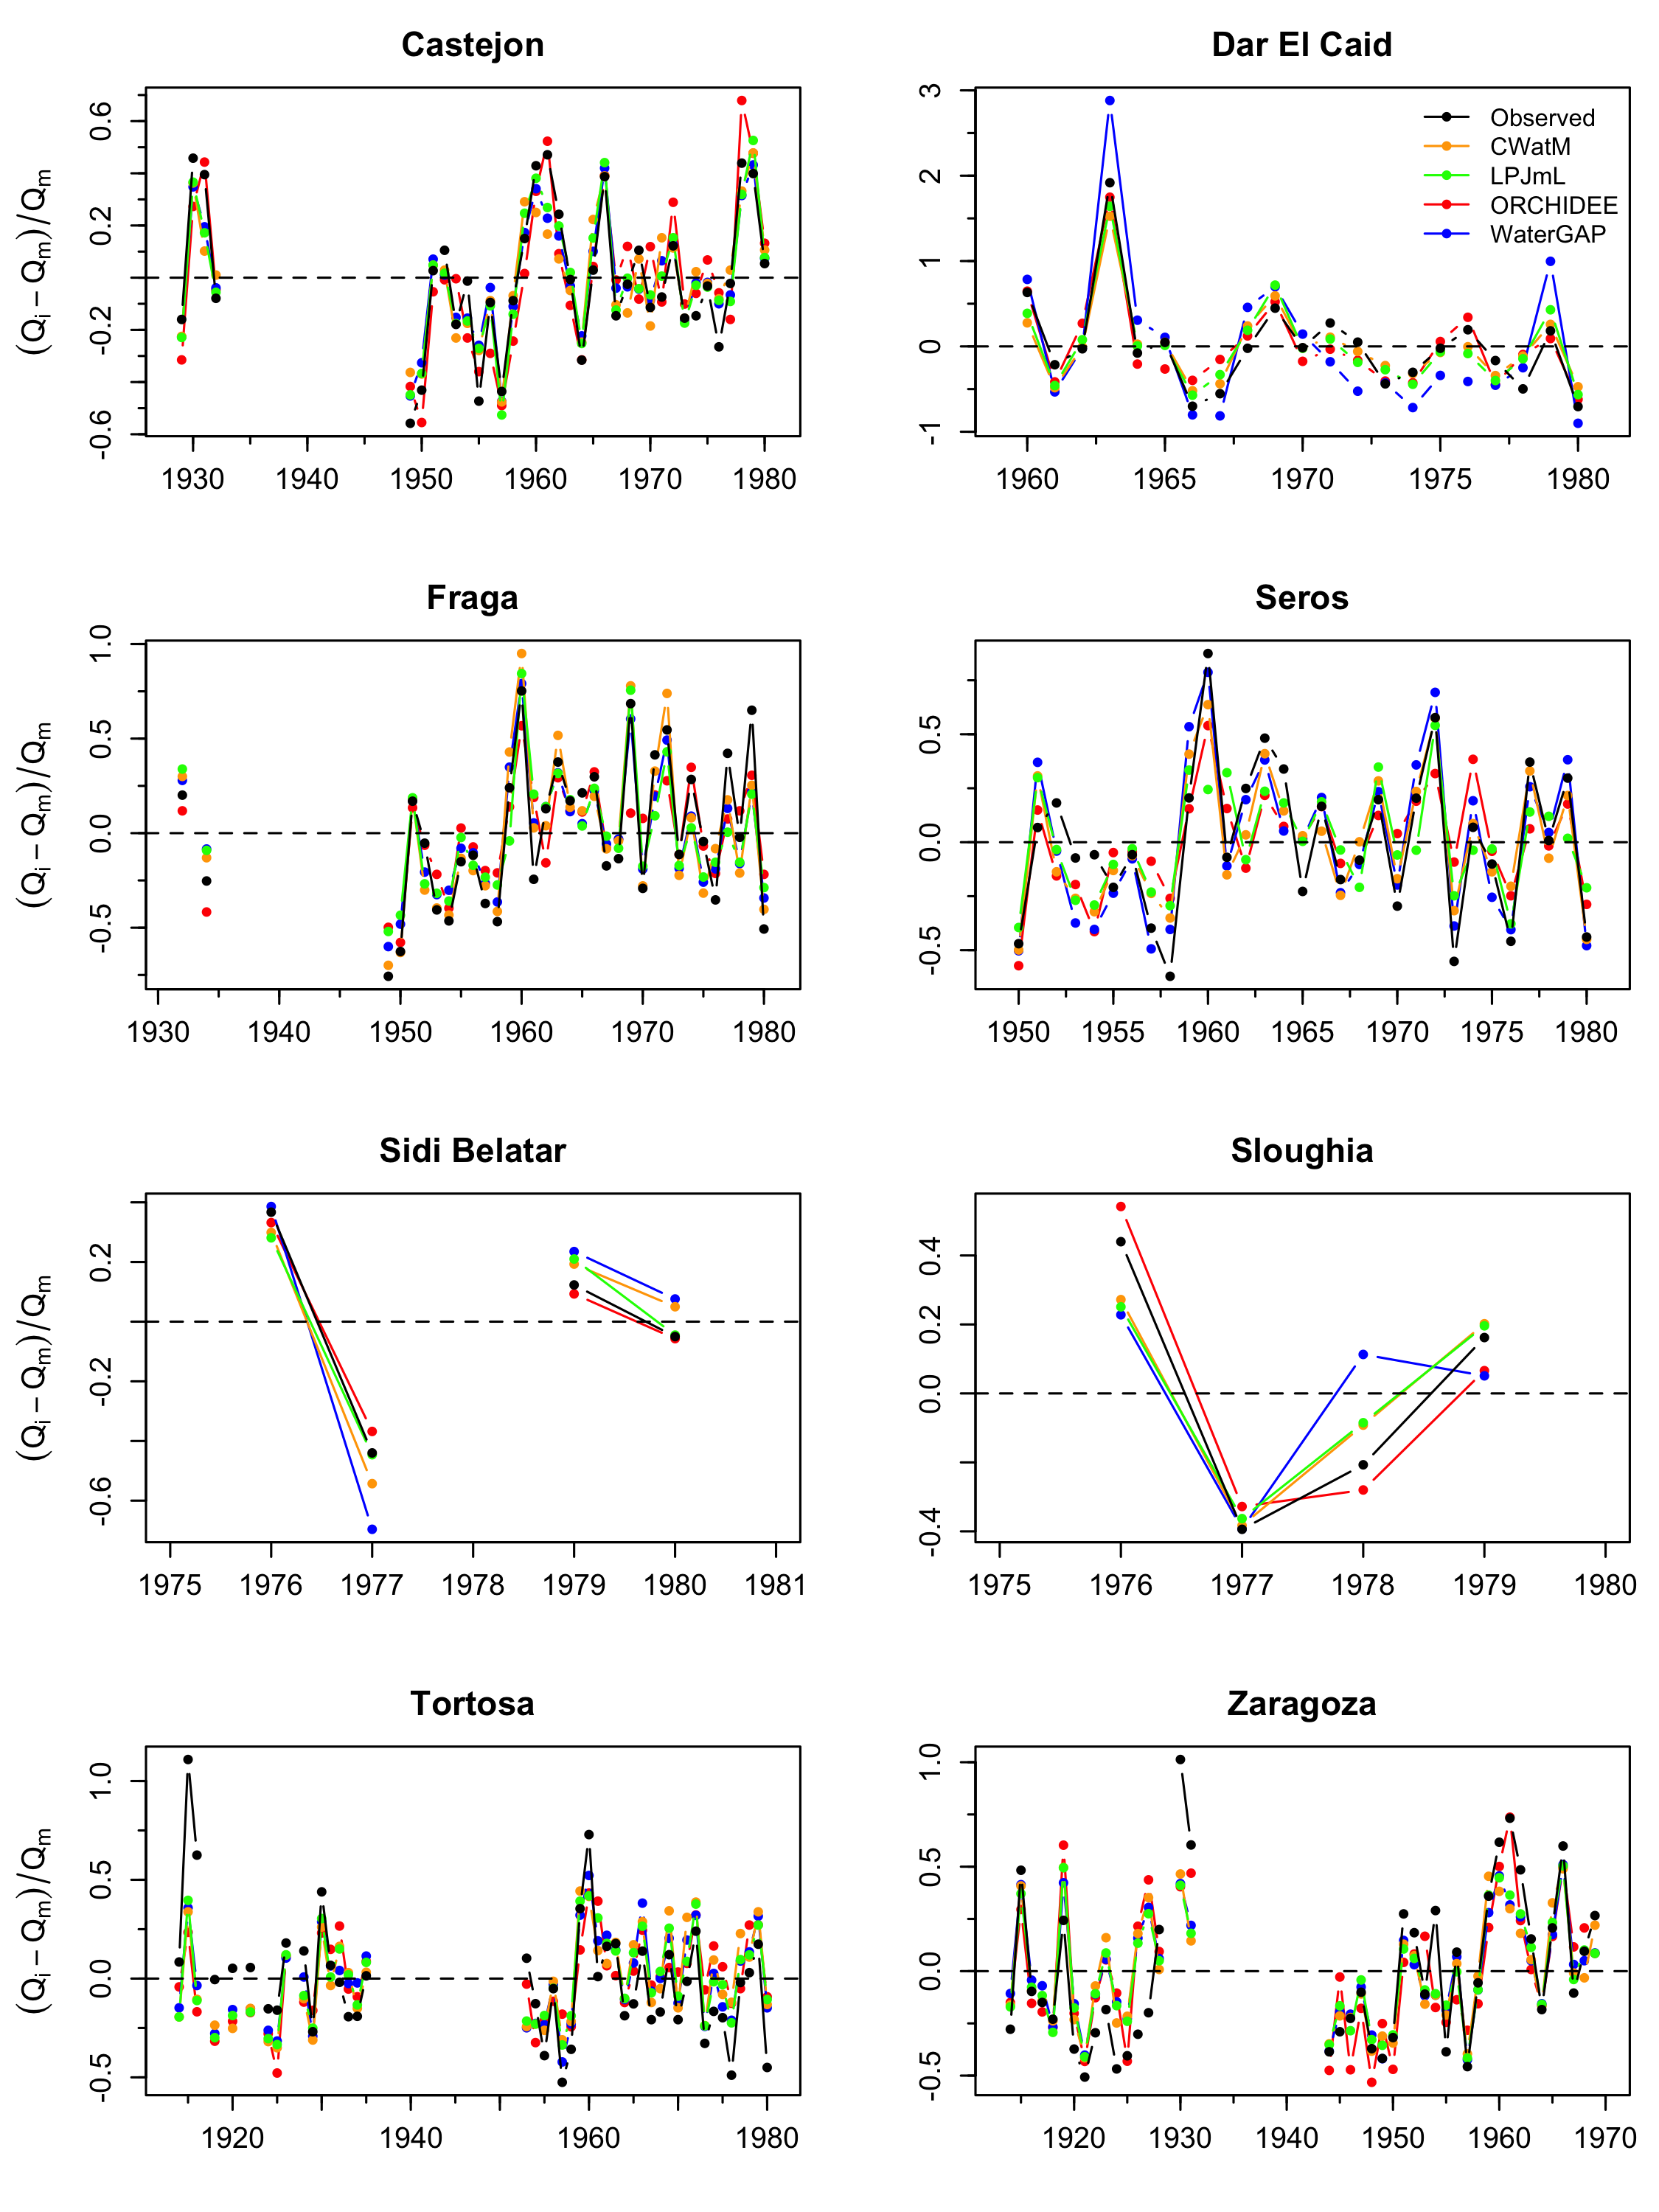 Figure 2: Comparison between observed and modelled streamflow interannual variability for eight gauging stations. Observations were collected from the online data portal of the Global Runoff Data Centre (GRDC), 56068 Koblenz, Germany. Model estimates were computed by CWatM, LPJmL, ORCHIDEE and WaterGAP2.2d. Qm is the mean annual streamflow and Qi is the annual streamflow at time i.